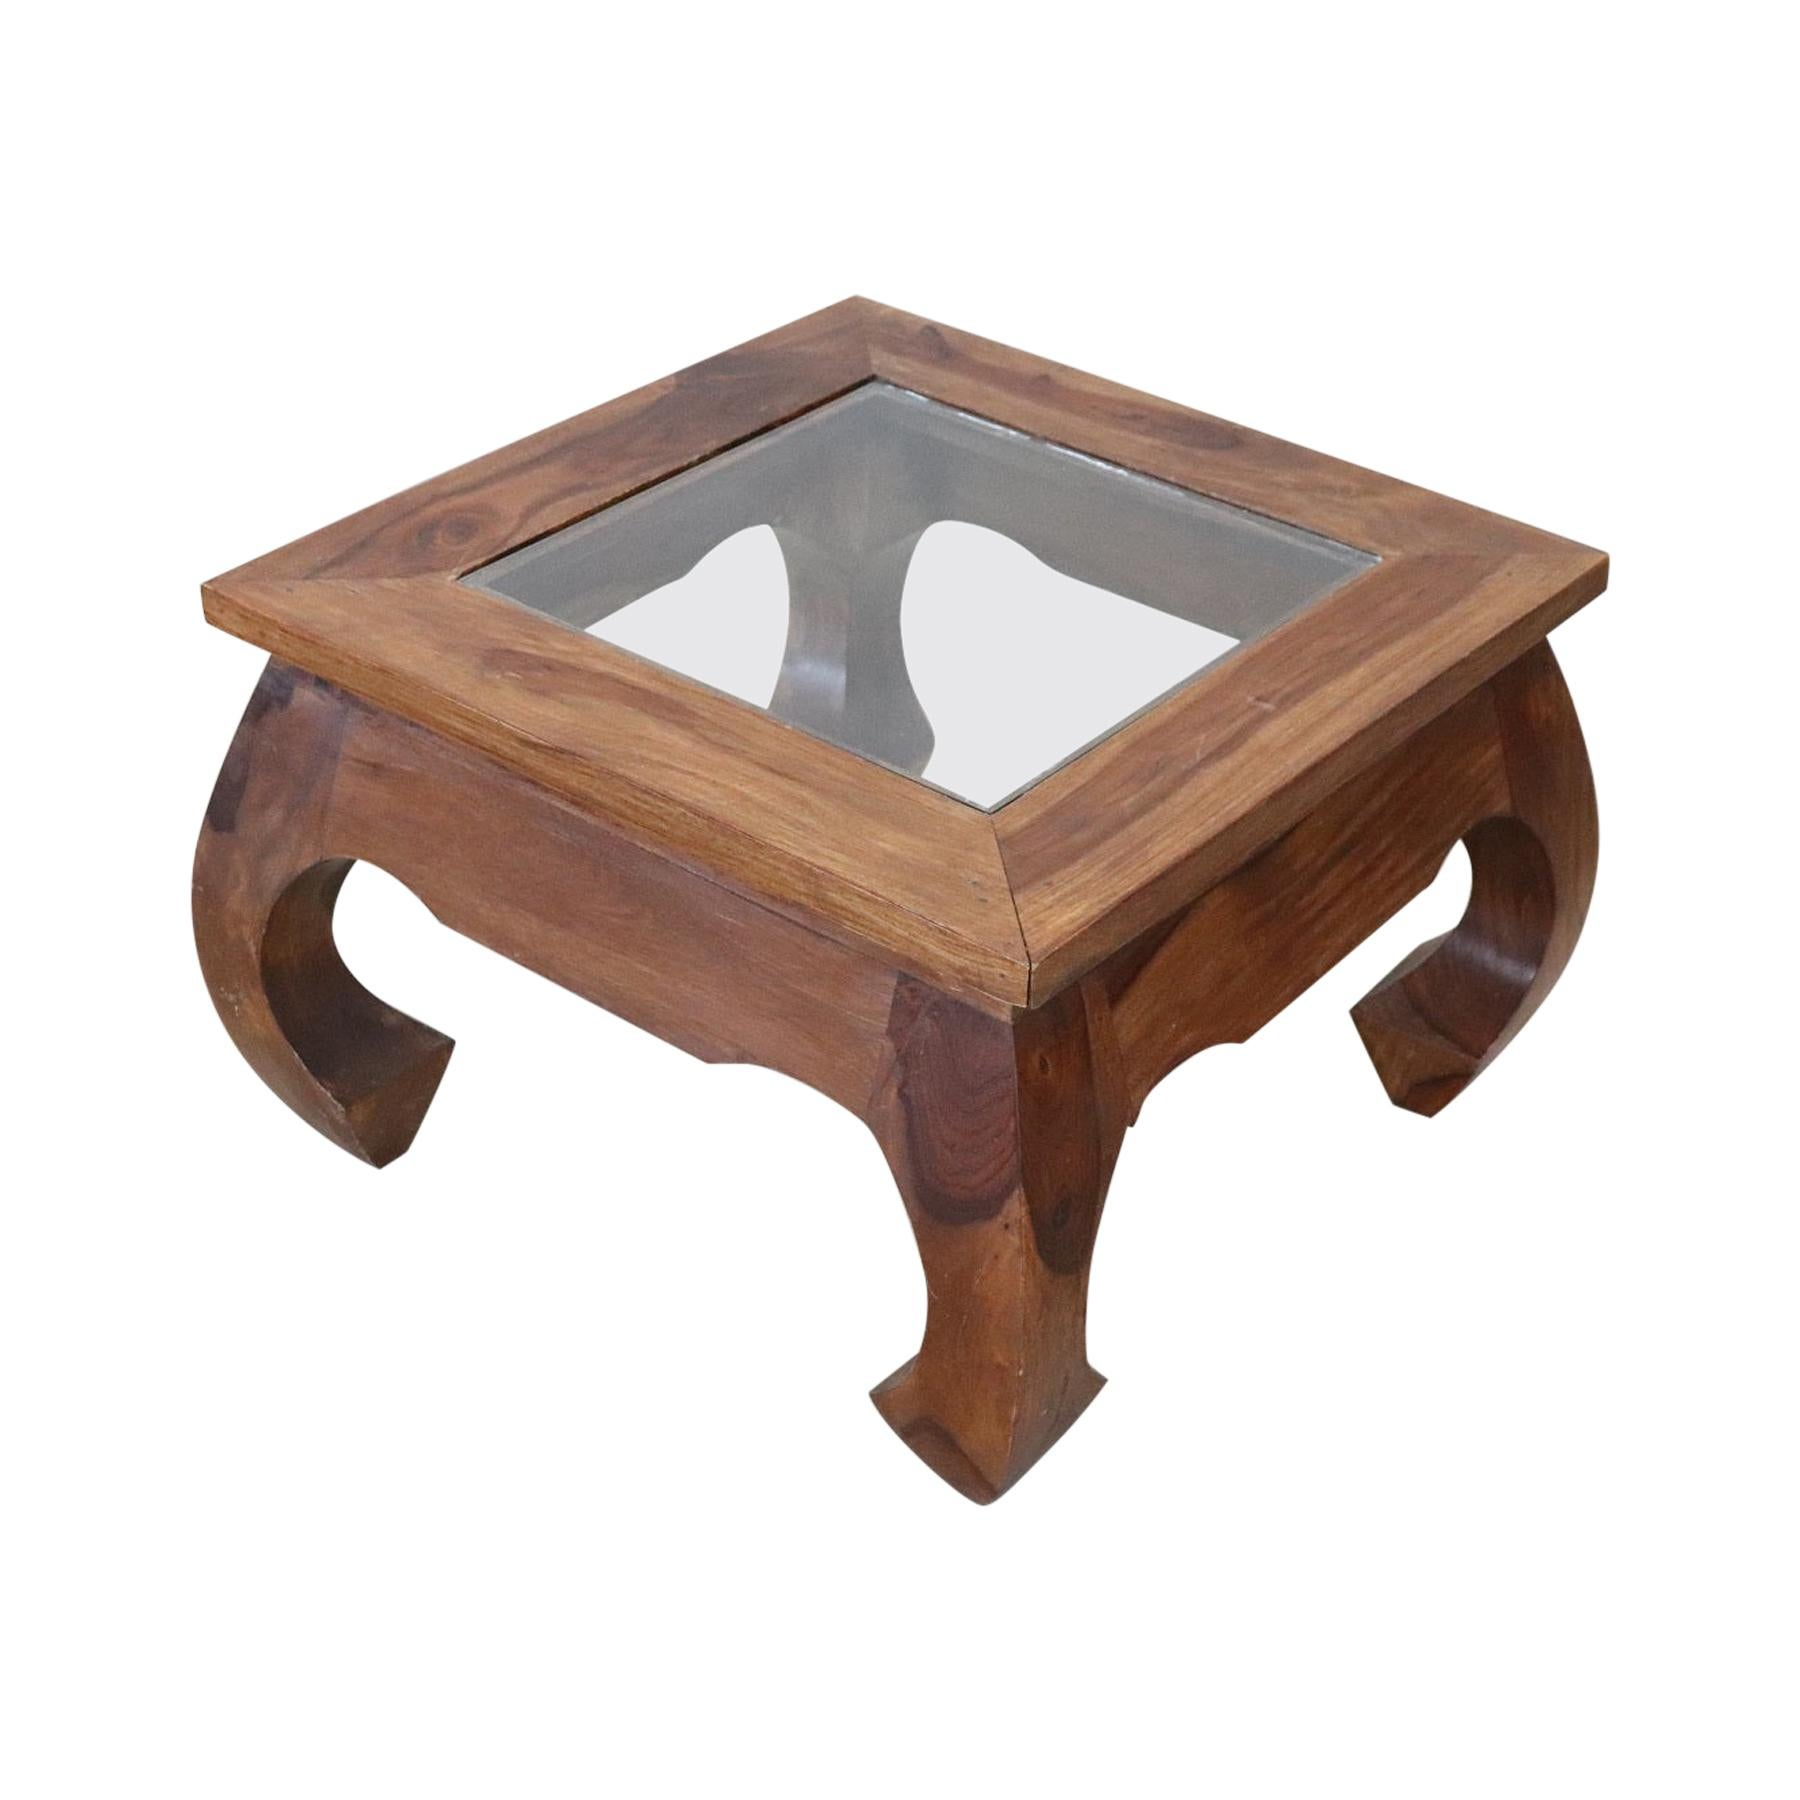 20th Century Walnut Square Coffee Table or Sofa Table with Glass Top